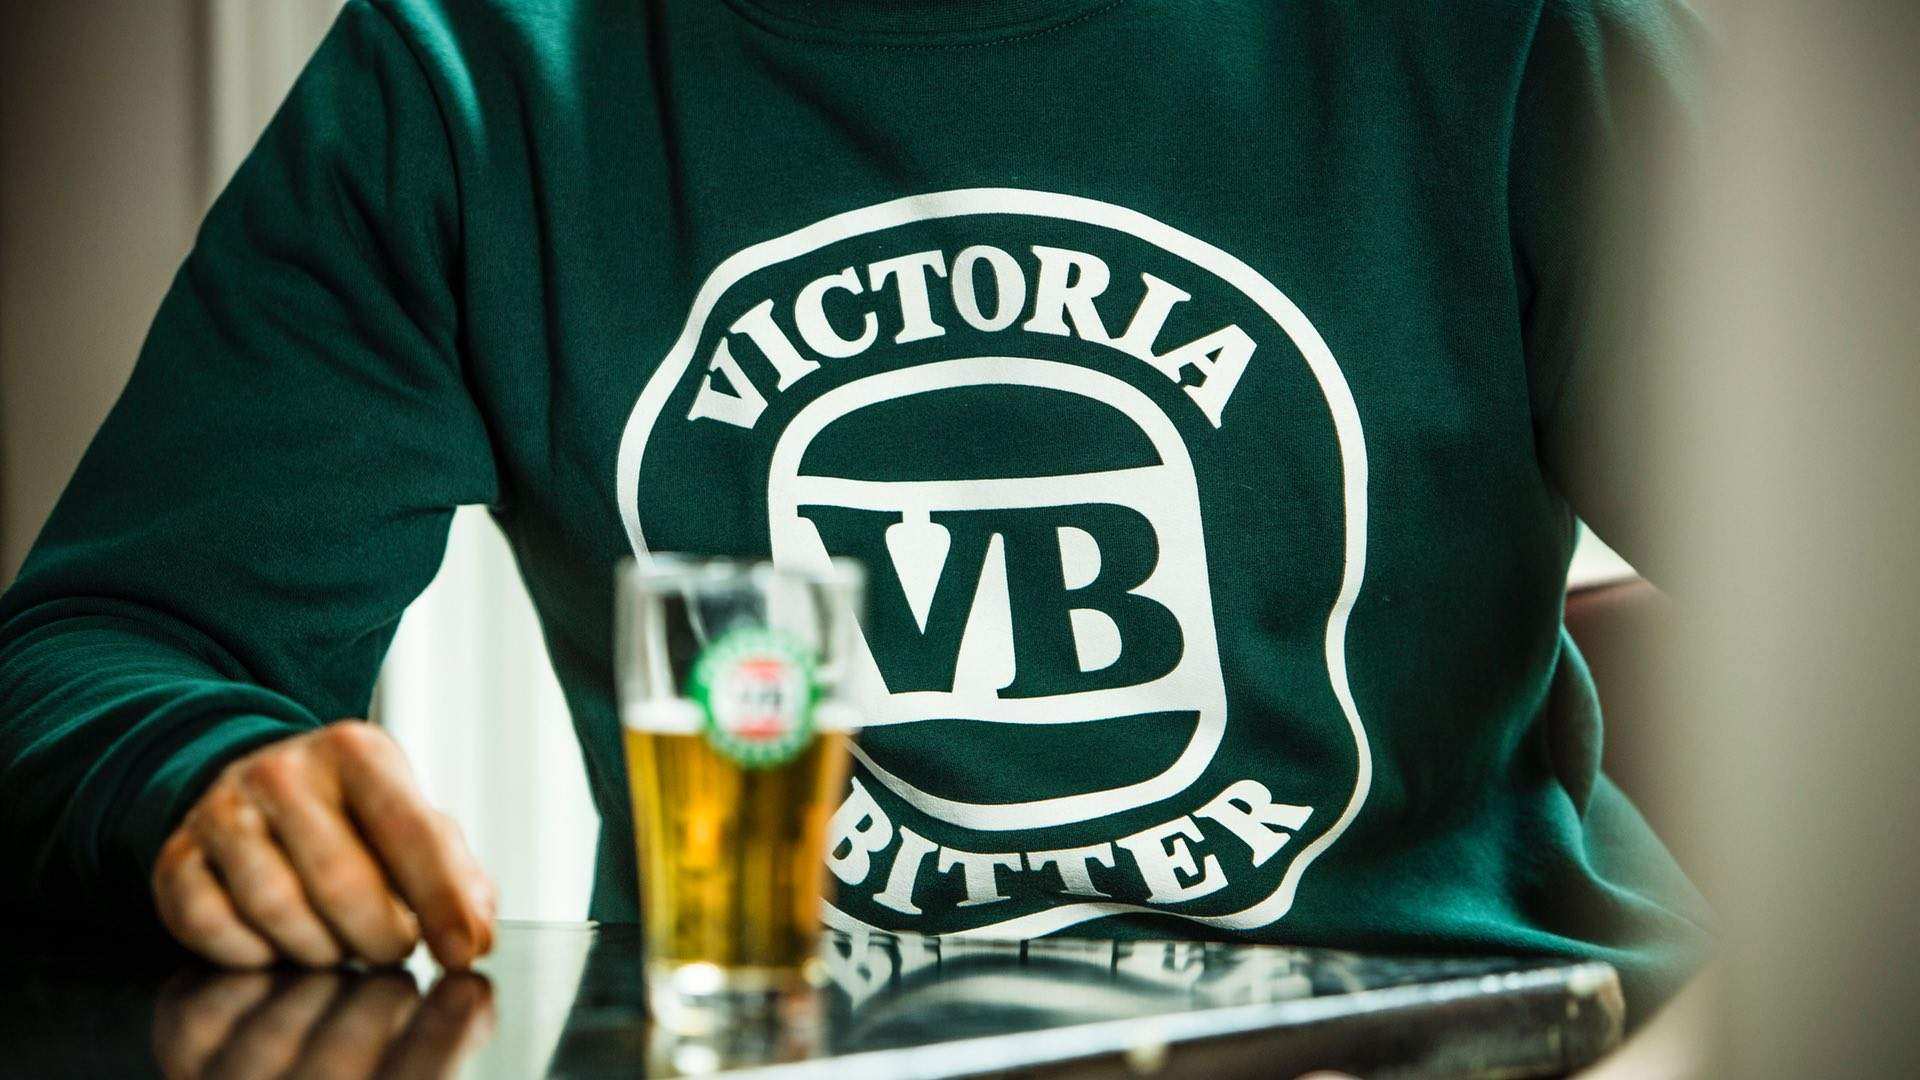 Victoria Bitter Has Just Dropped a Heap of Retro Clothing and Merch